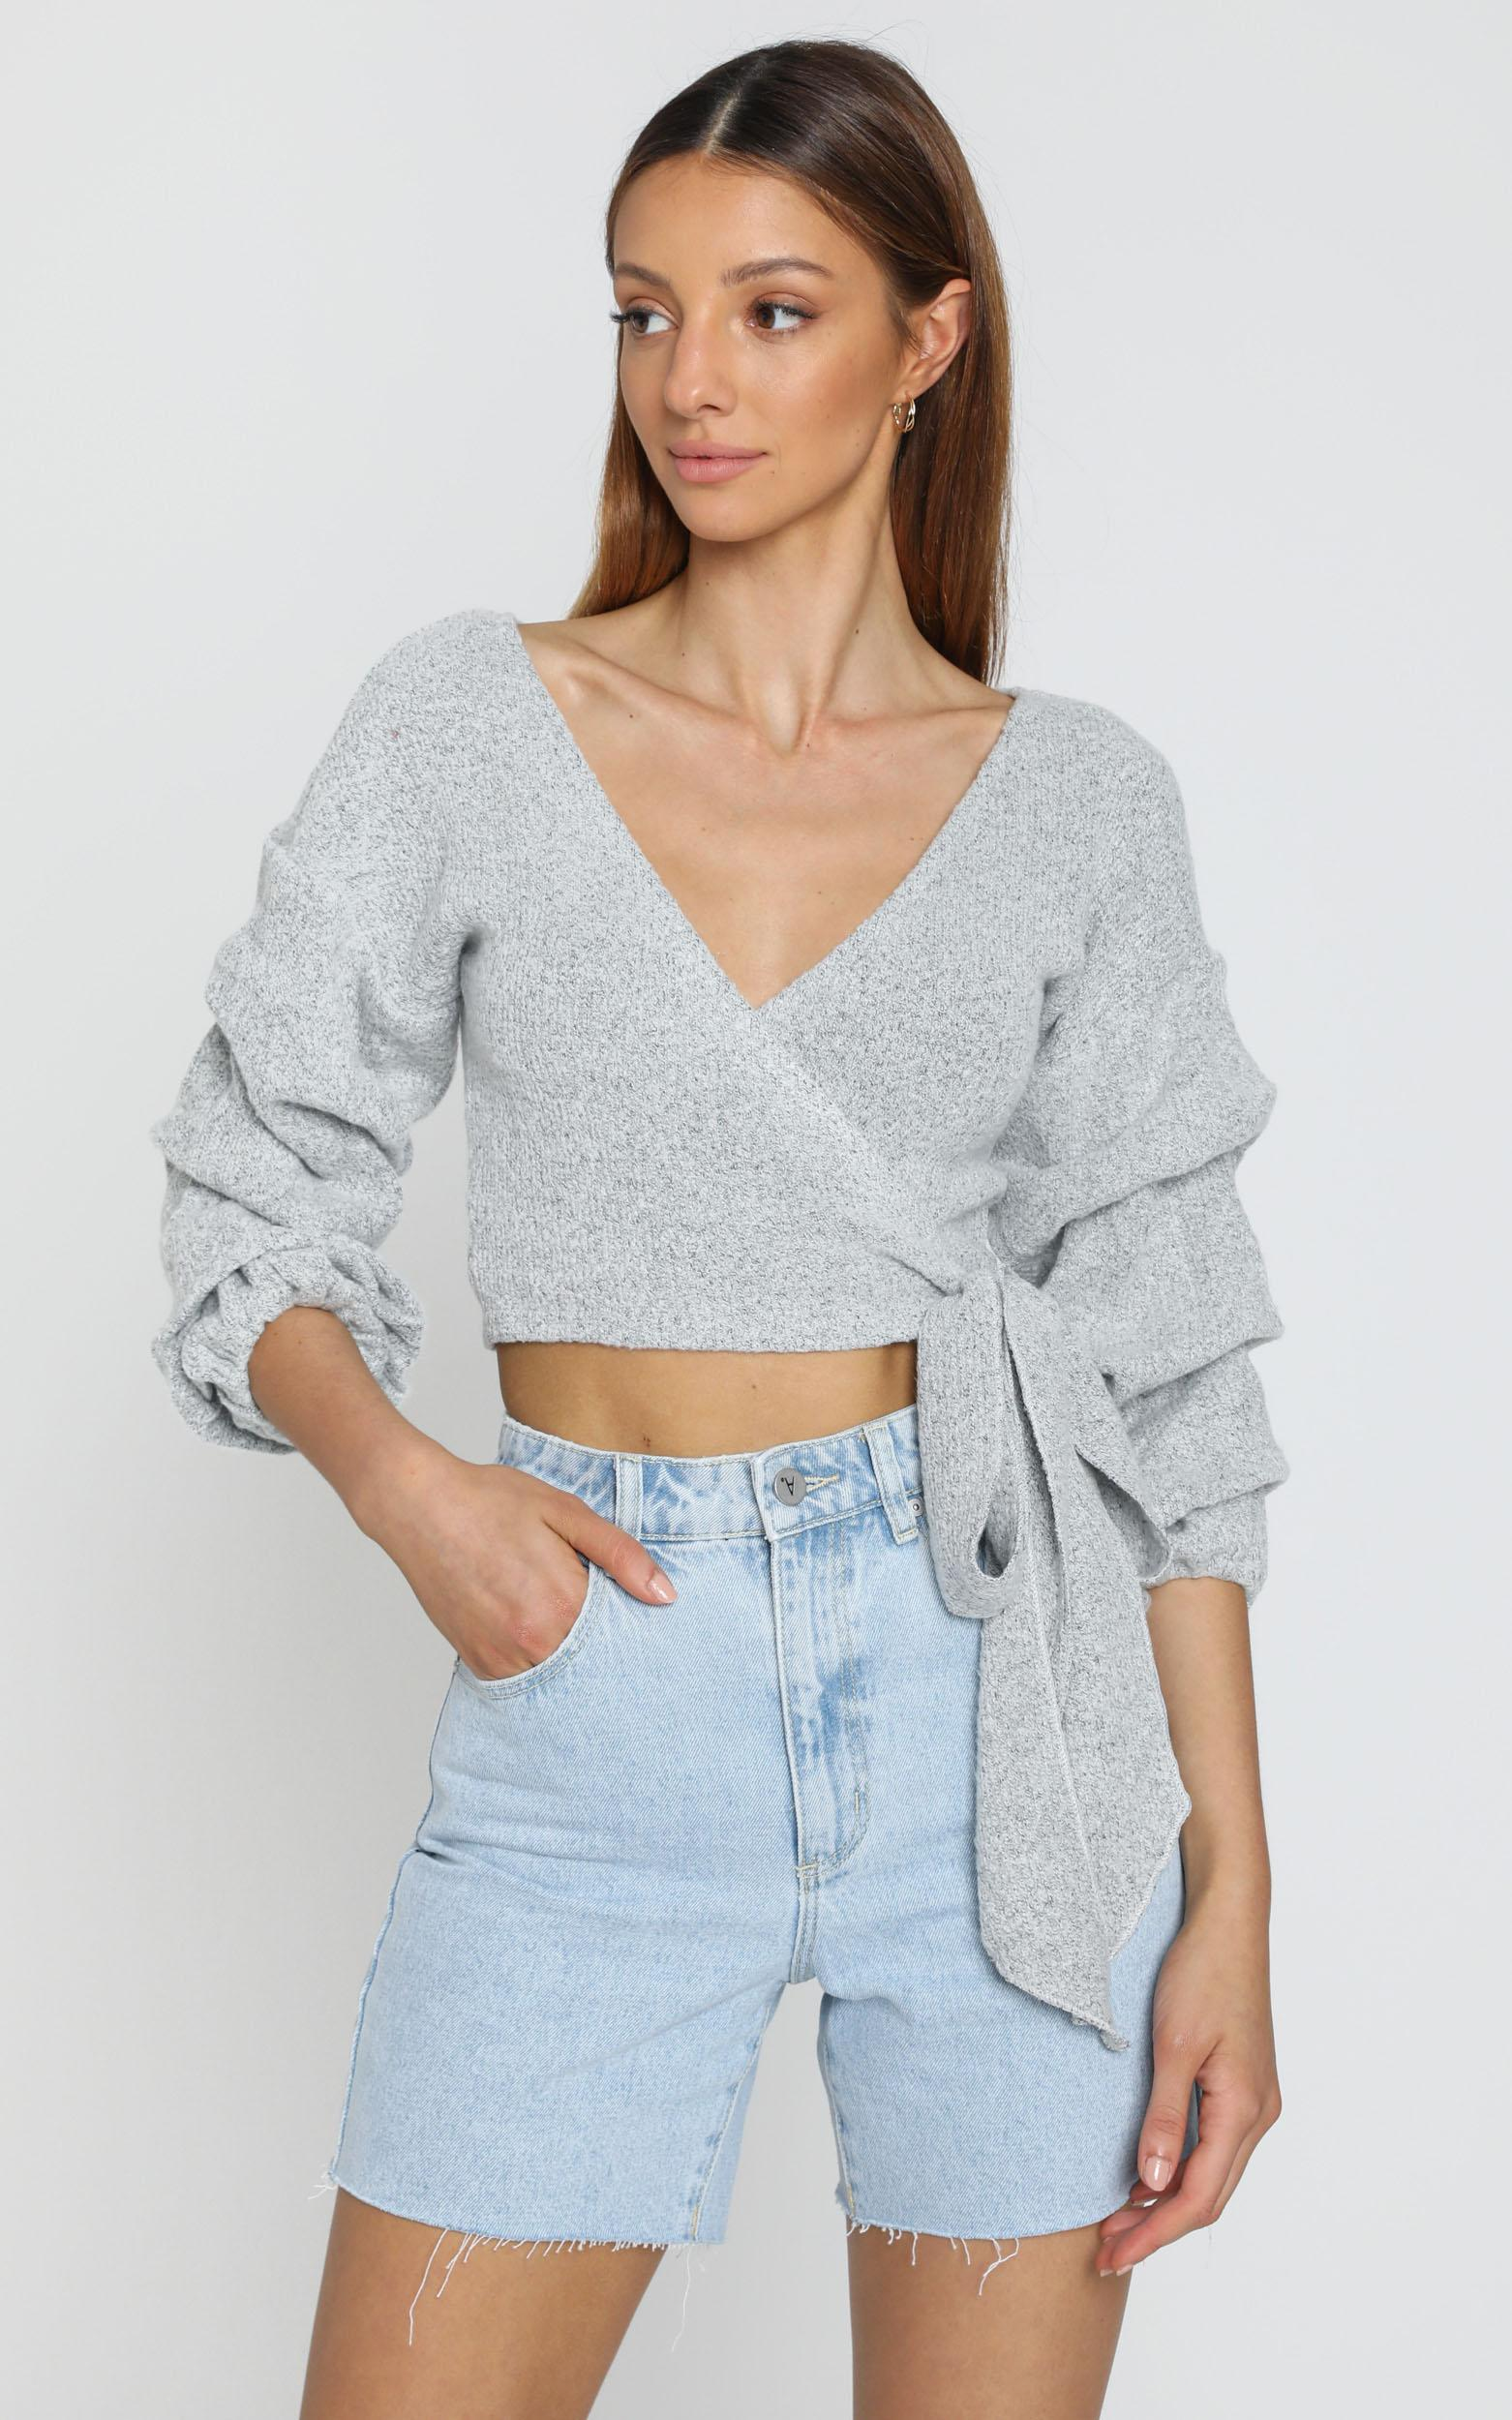 Good Decisions knit top in grey - 12 (L), Grey, hi-res image number null